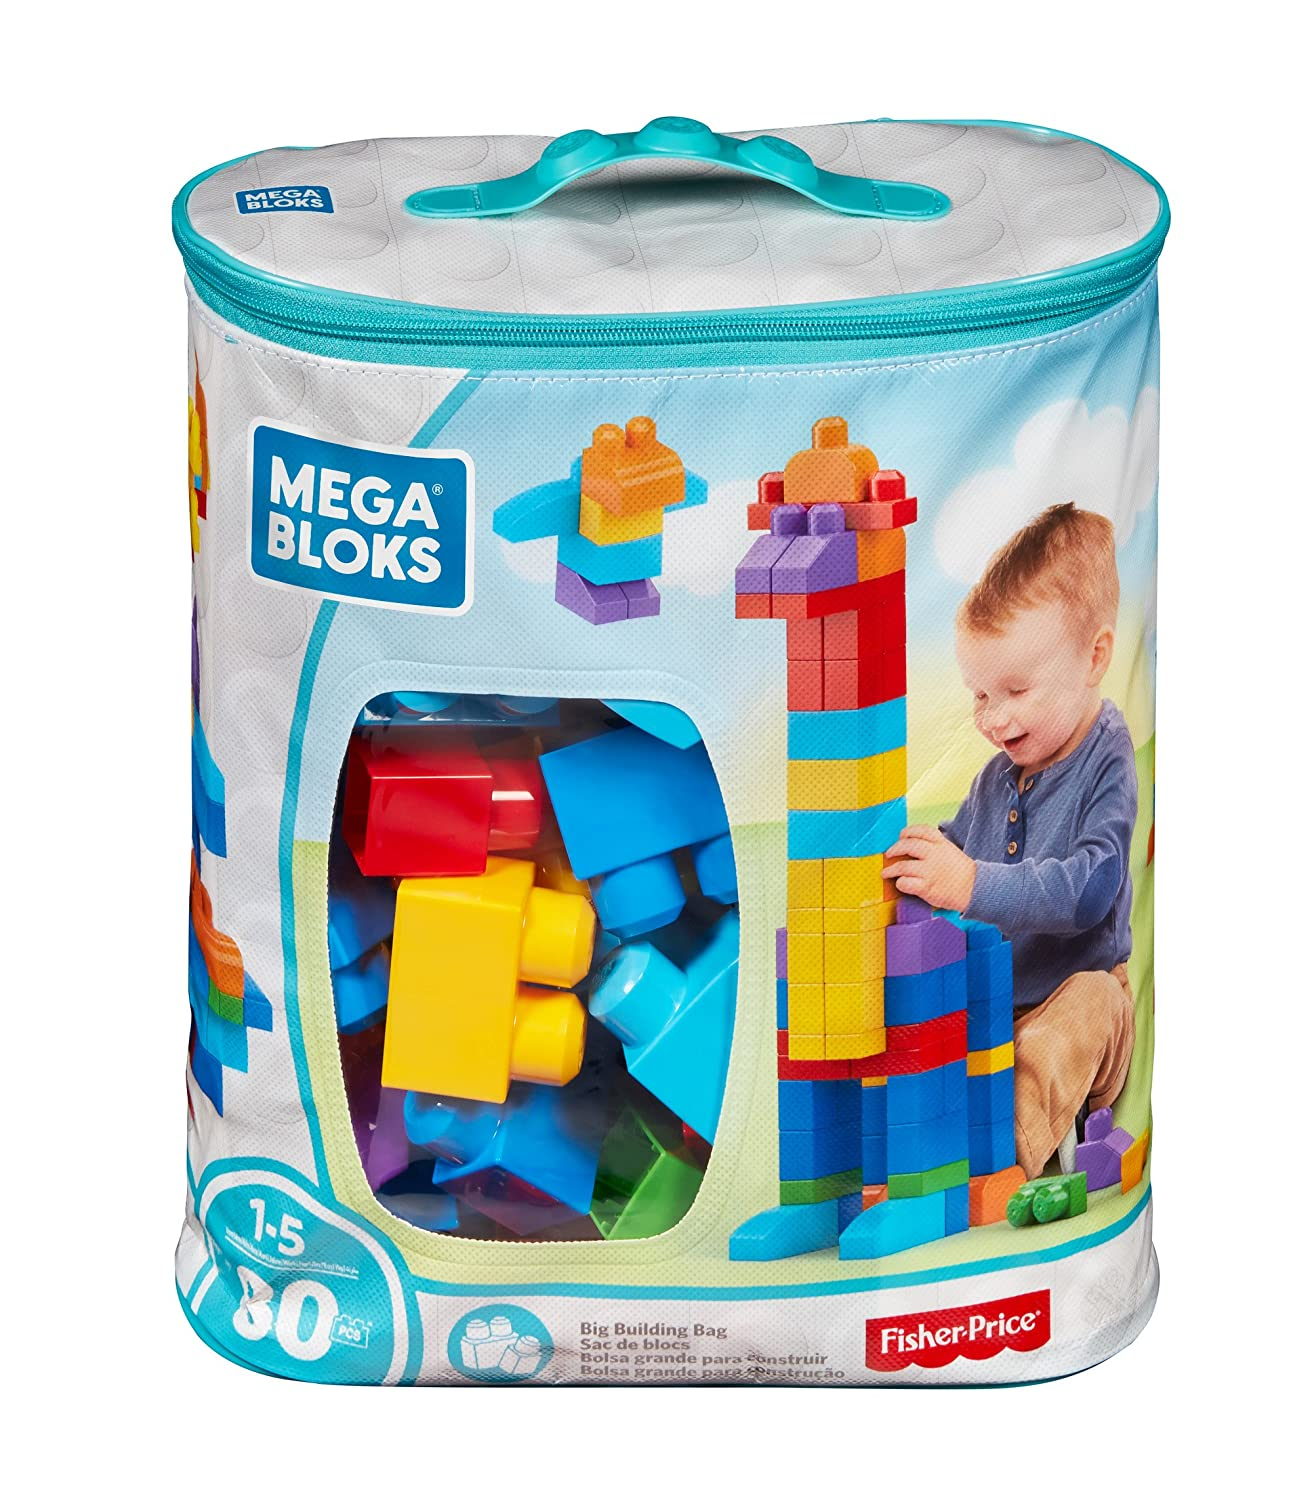 $7.65 (was: $19.99) Mega Bloks 80 pc Big Building Bag (Classic)